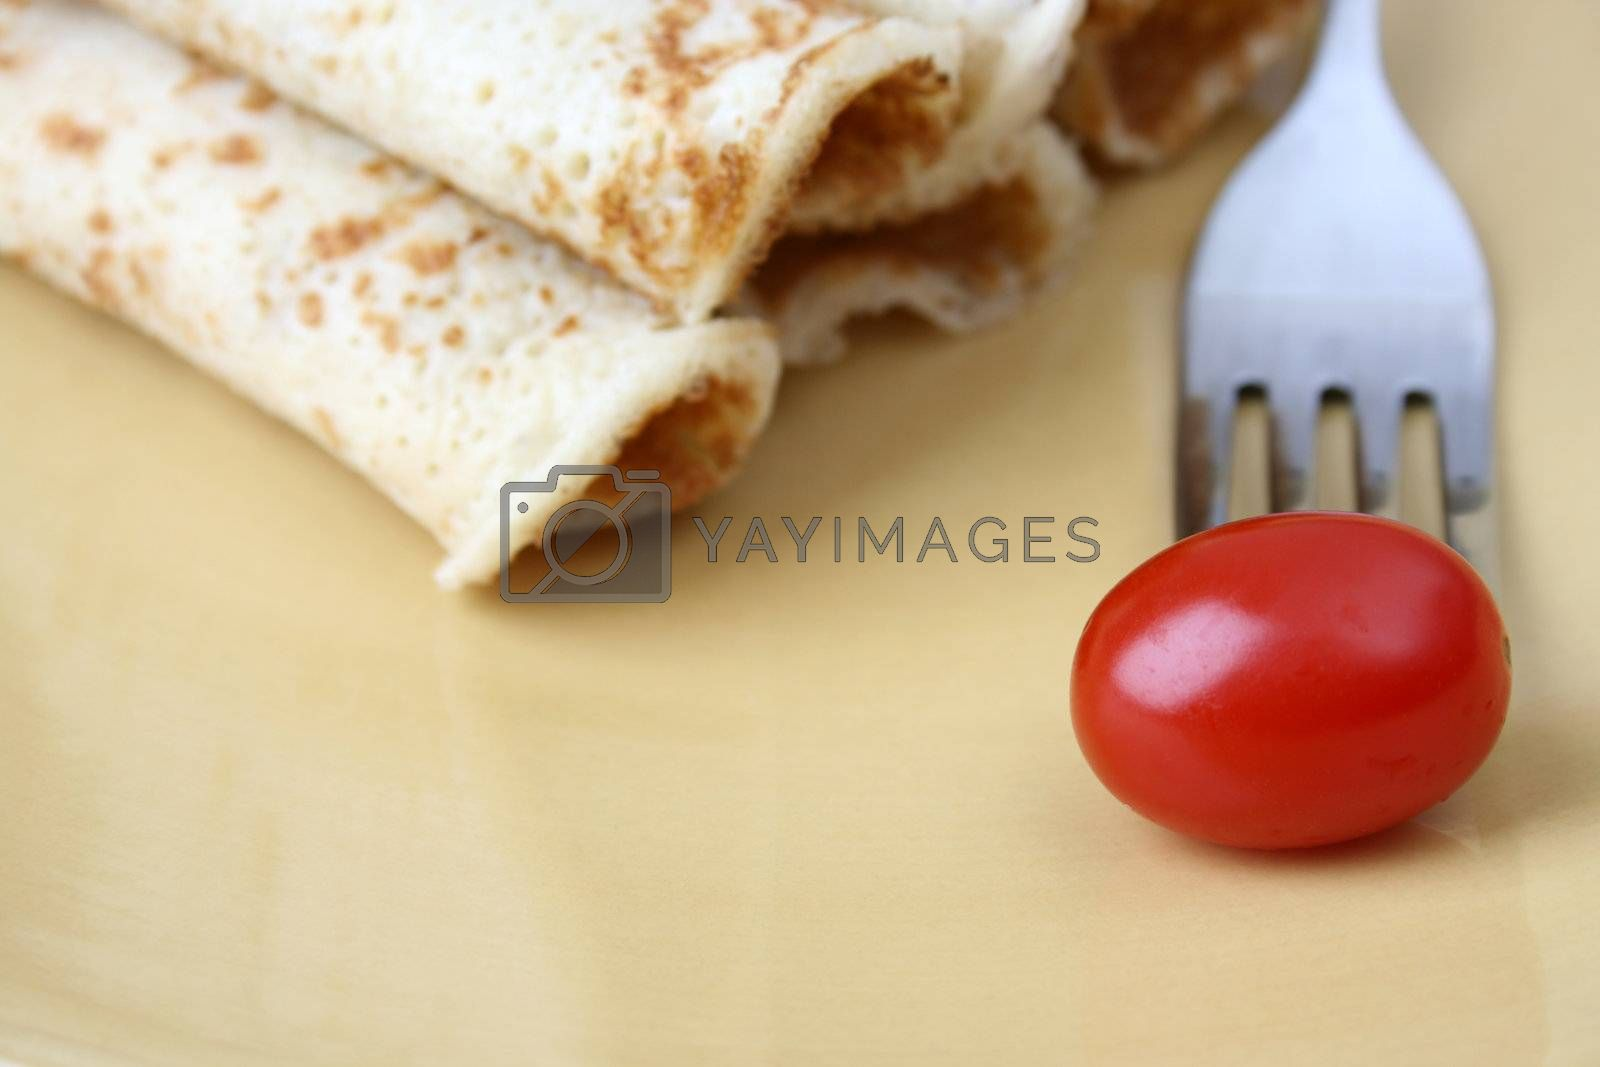 Barbeque Chicken Pancakes with a single tomato